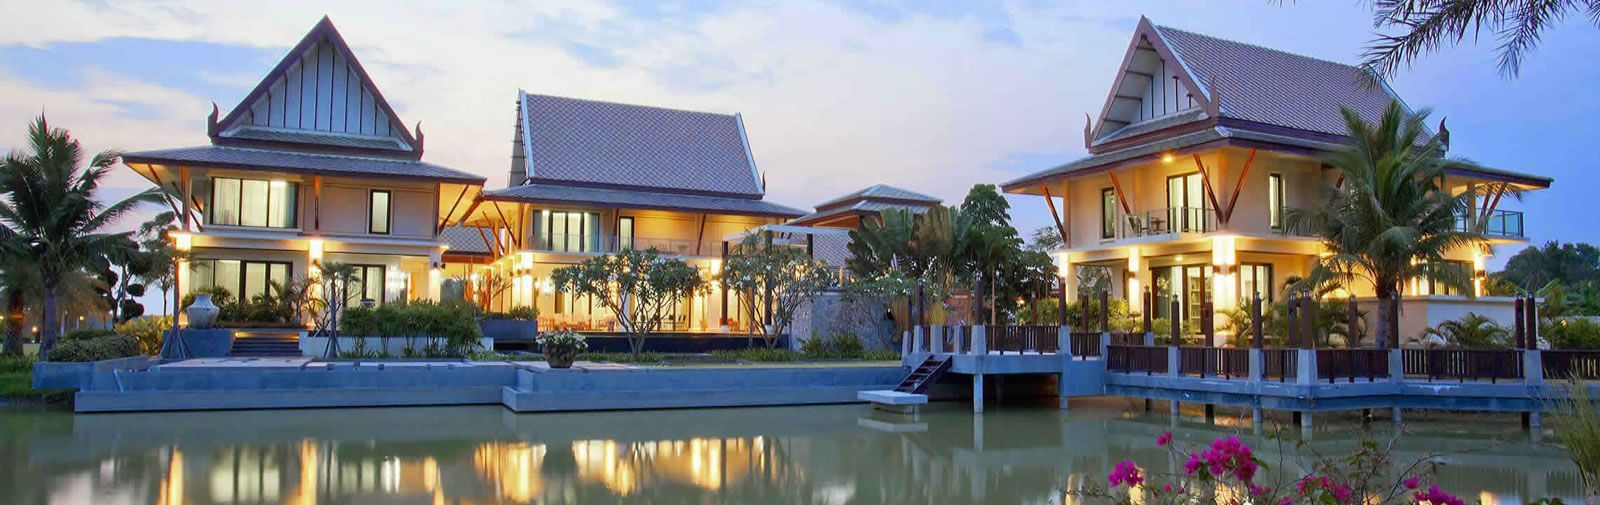 Villa Grace Pattaya